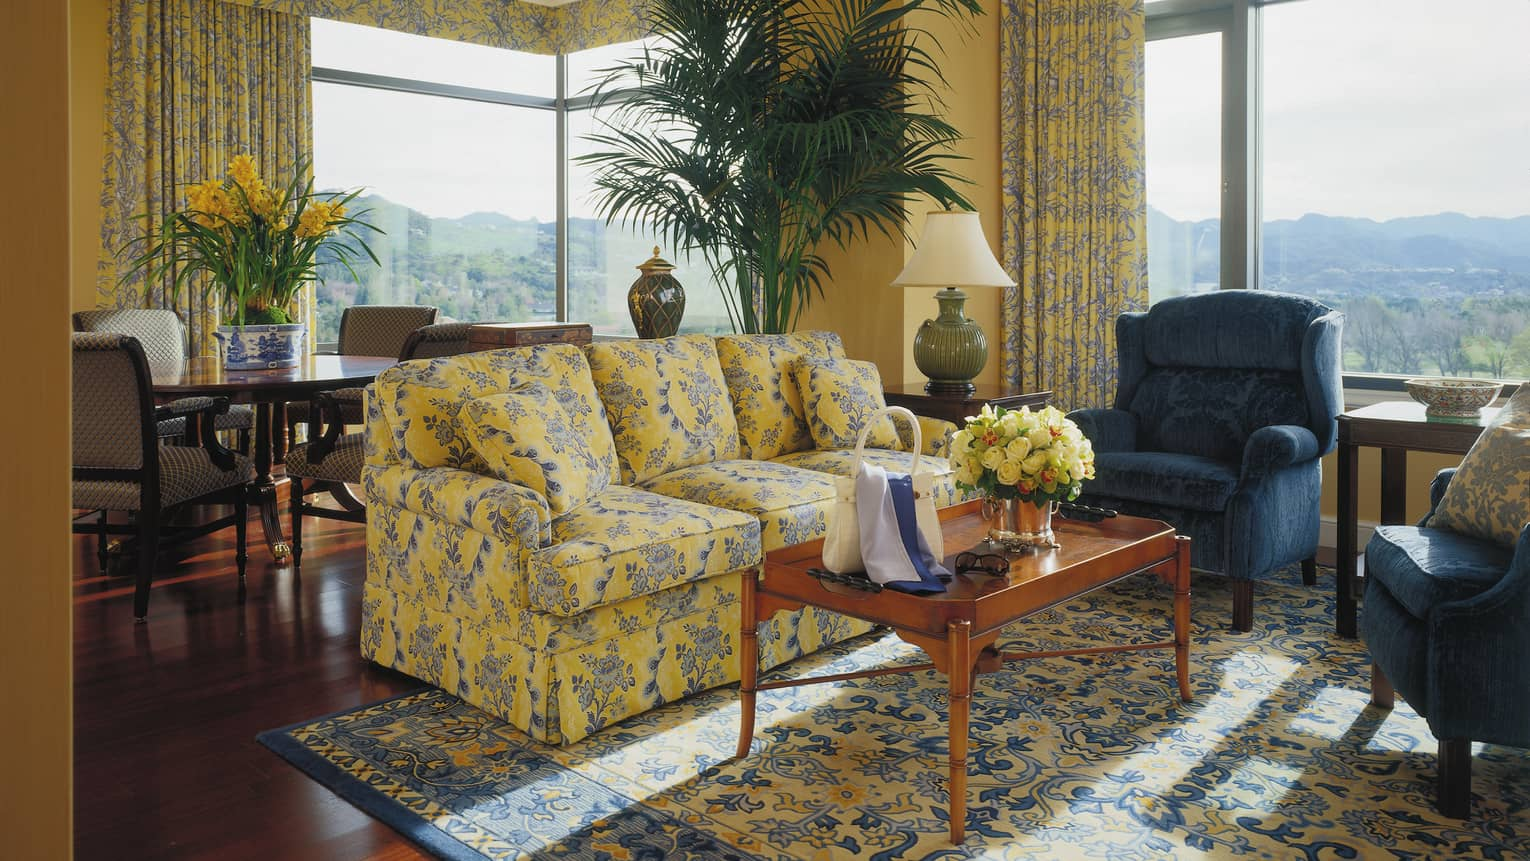 One Bedroom Suite Blue And Yellow Fl Sofa Armchair Coffee Table With Purse